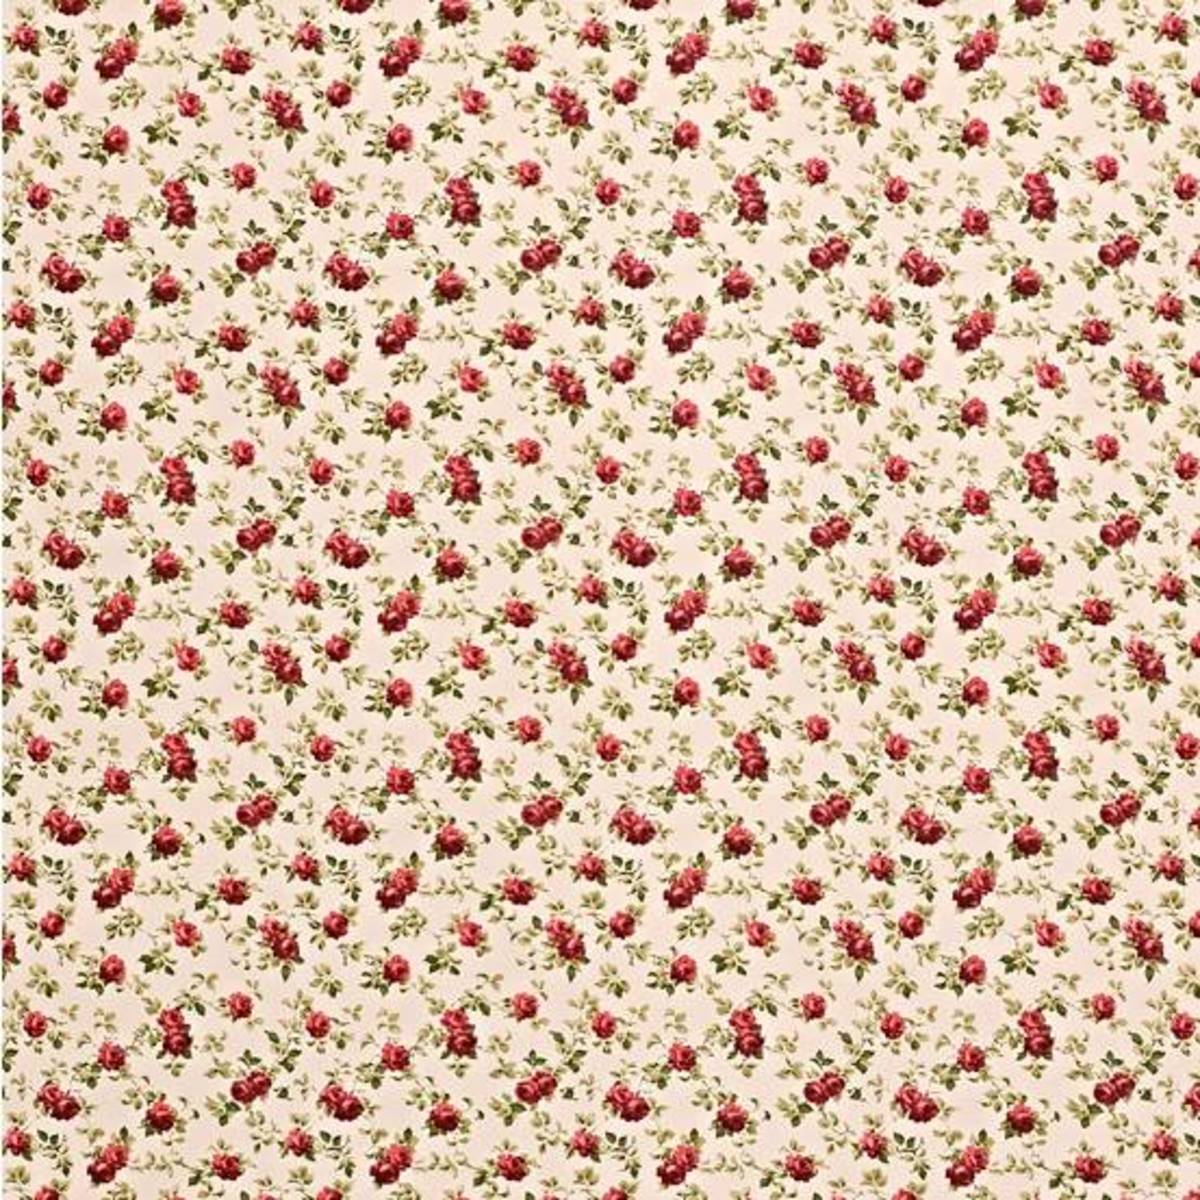 This ditsy all over print is easier to match than a formal pattern. These Fabrics Are Available From John Lewis in UK